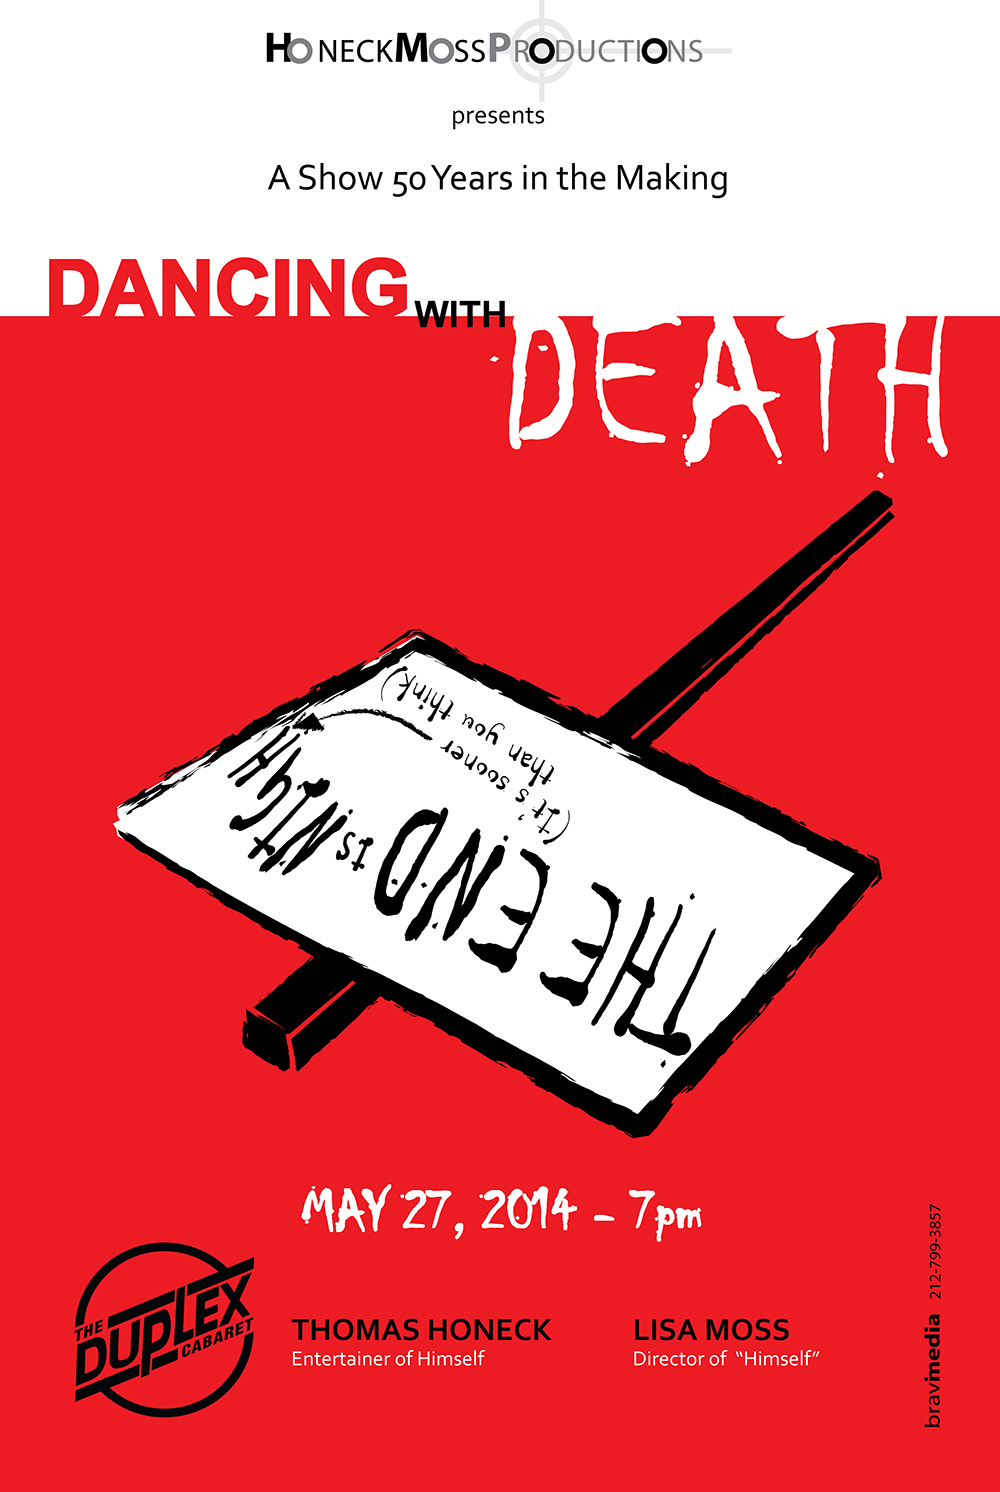 Dancing With Death with Thomas Honeck